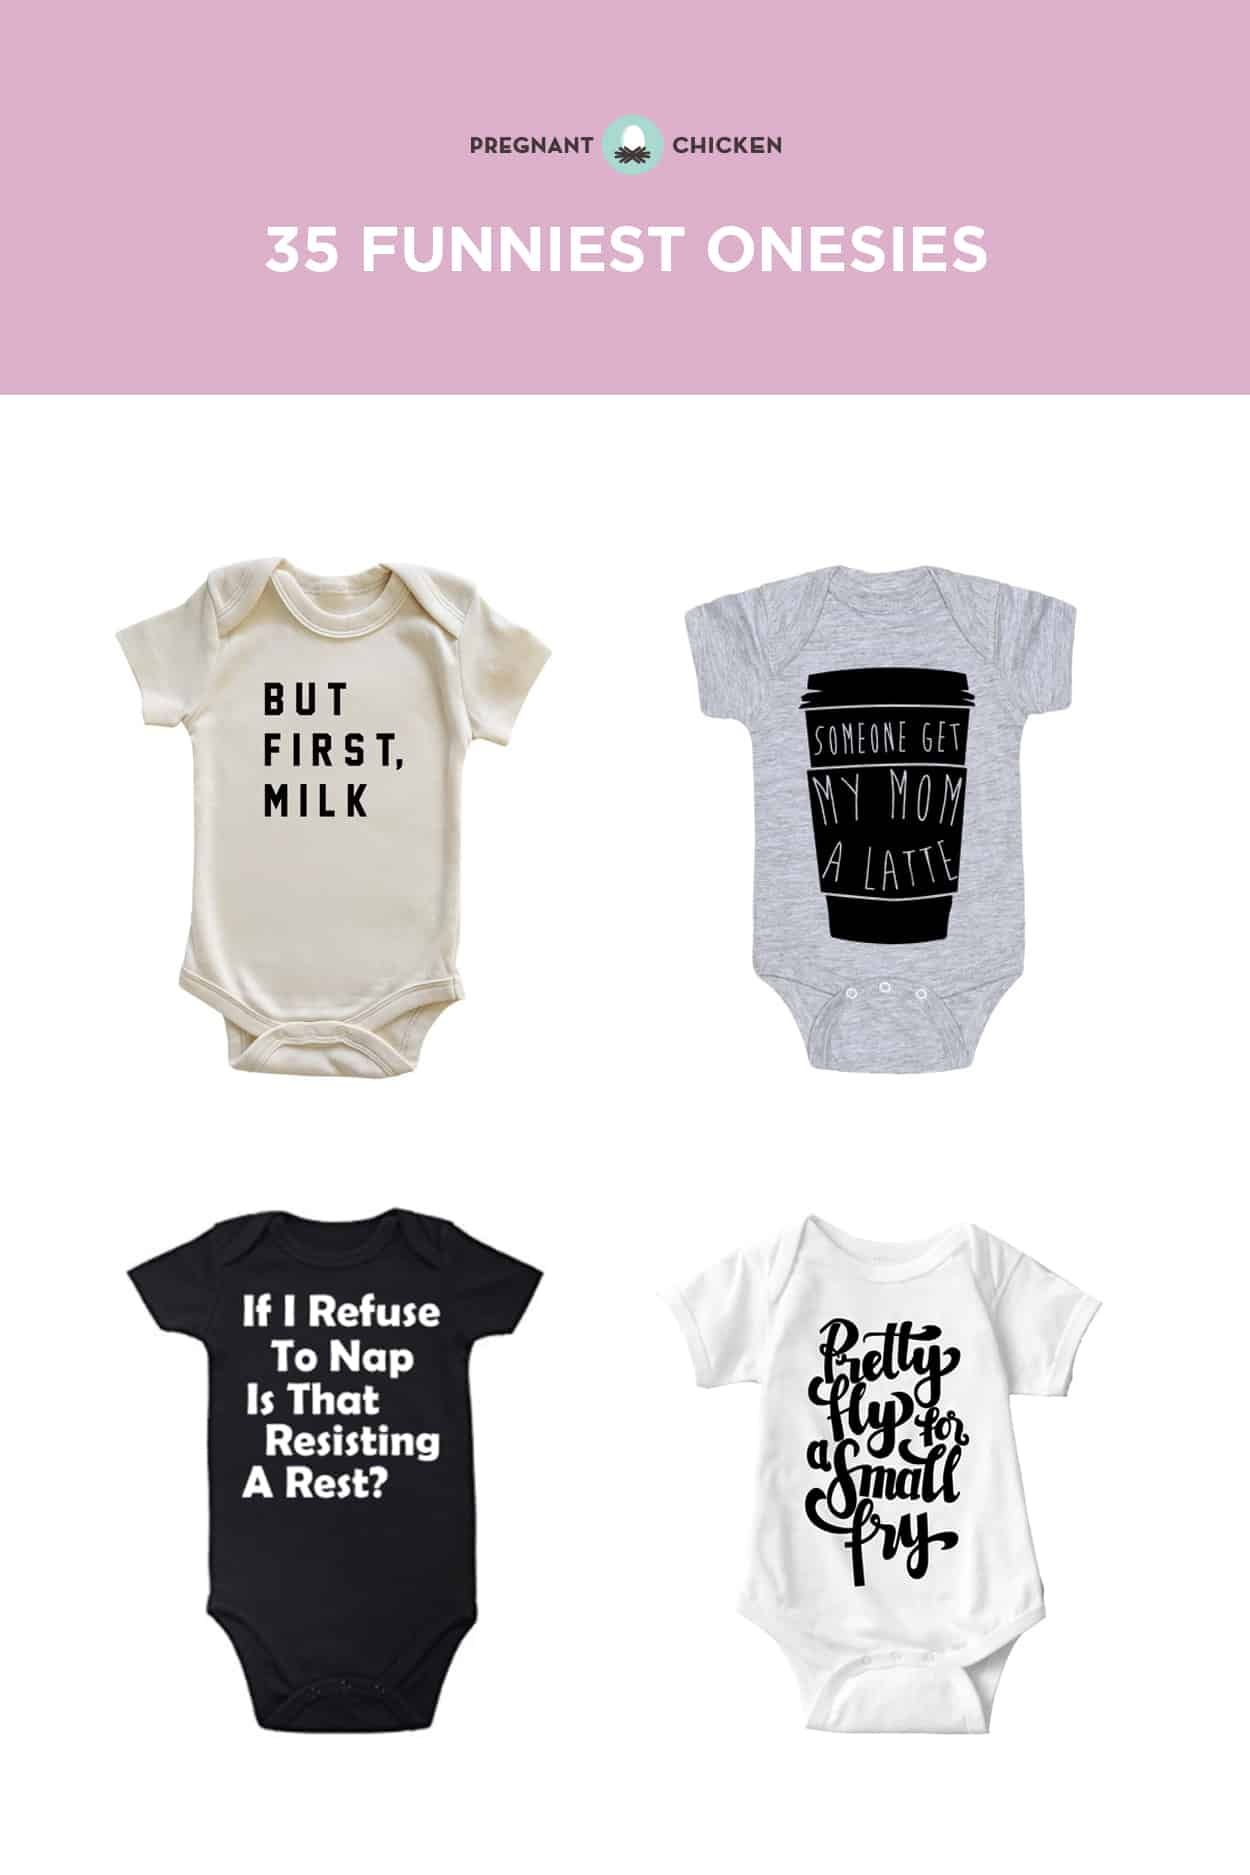 IF You Think IM Sassy//Meet My EX-Friend Toddler Tee Funny Baby T-Shirt